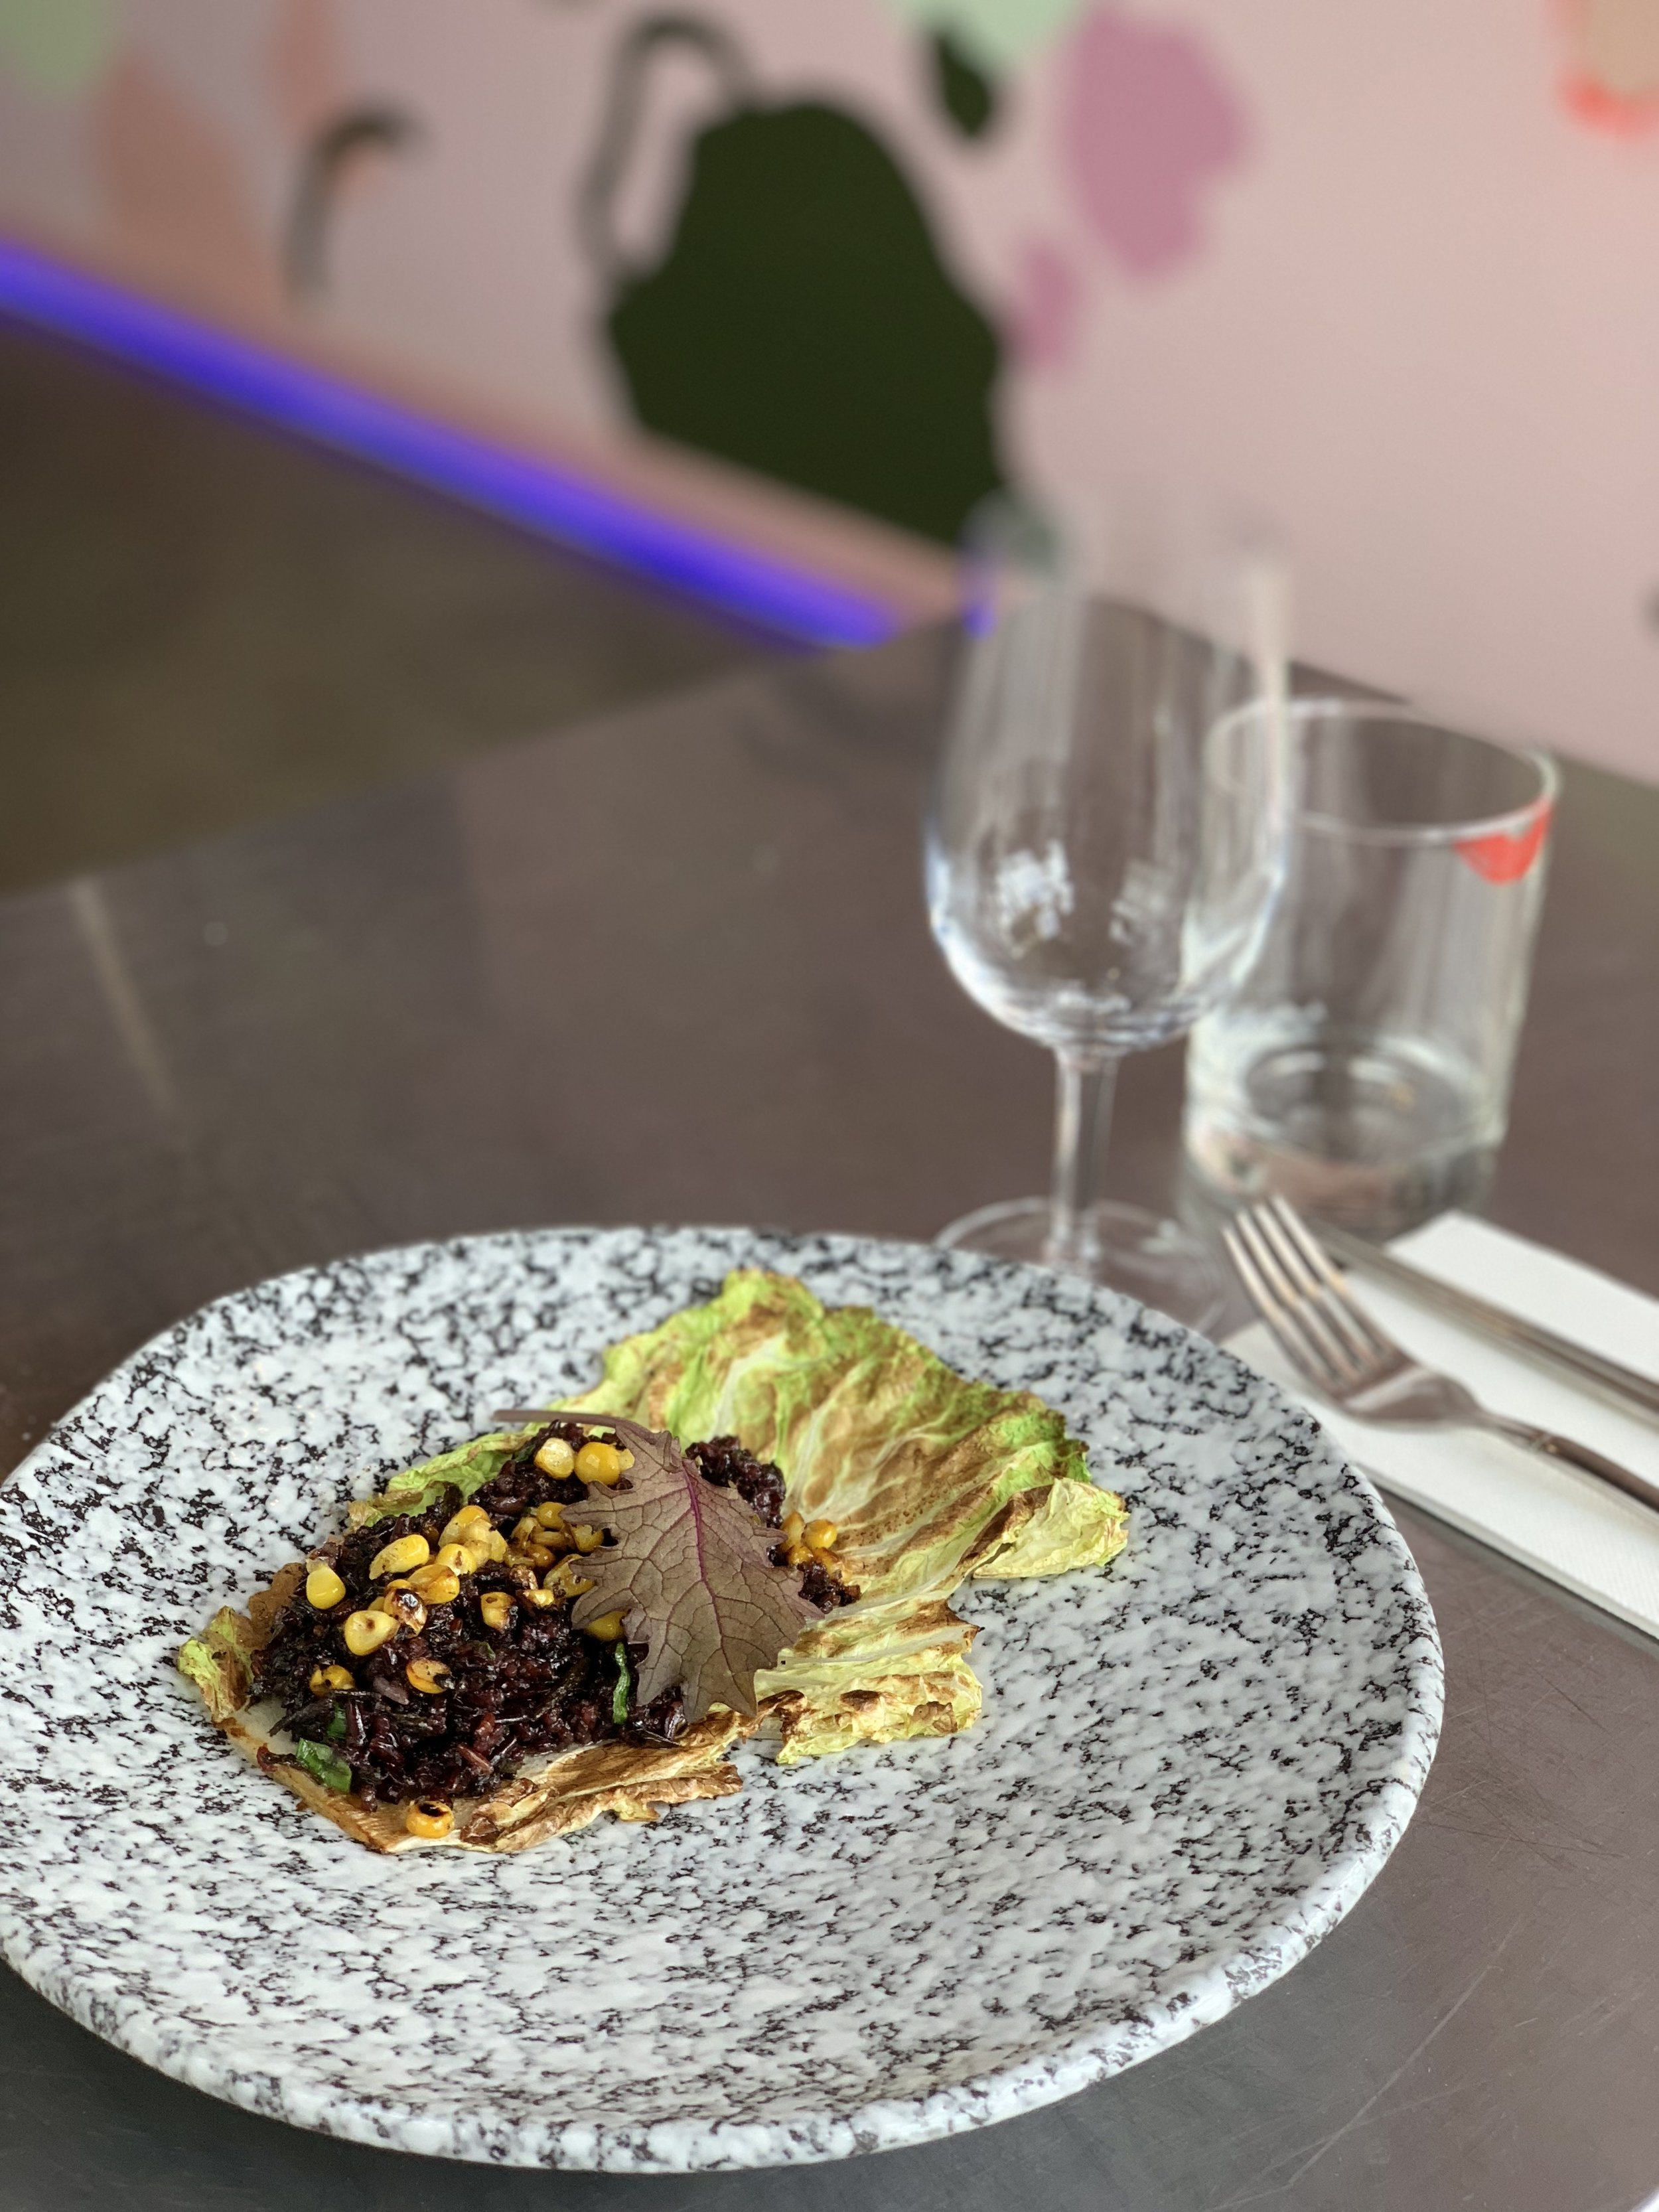 Grilled Chinese cabbage, black sticky rice with corn and preserved olive leaves